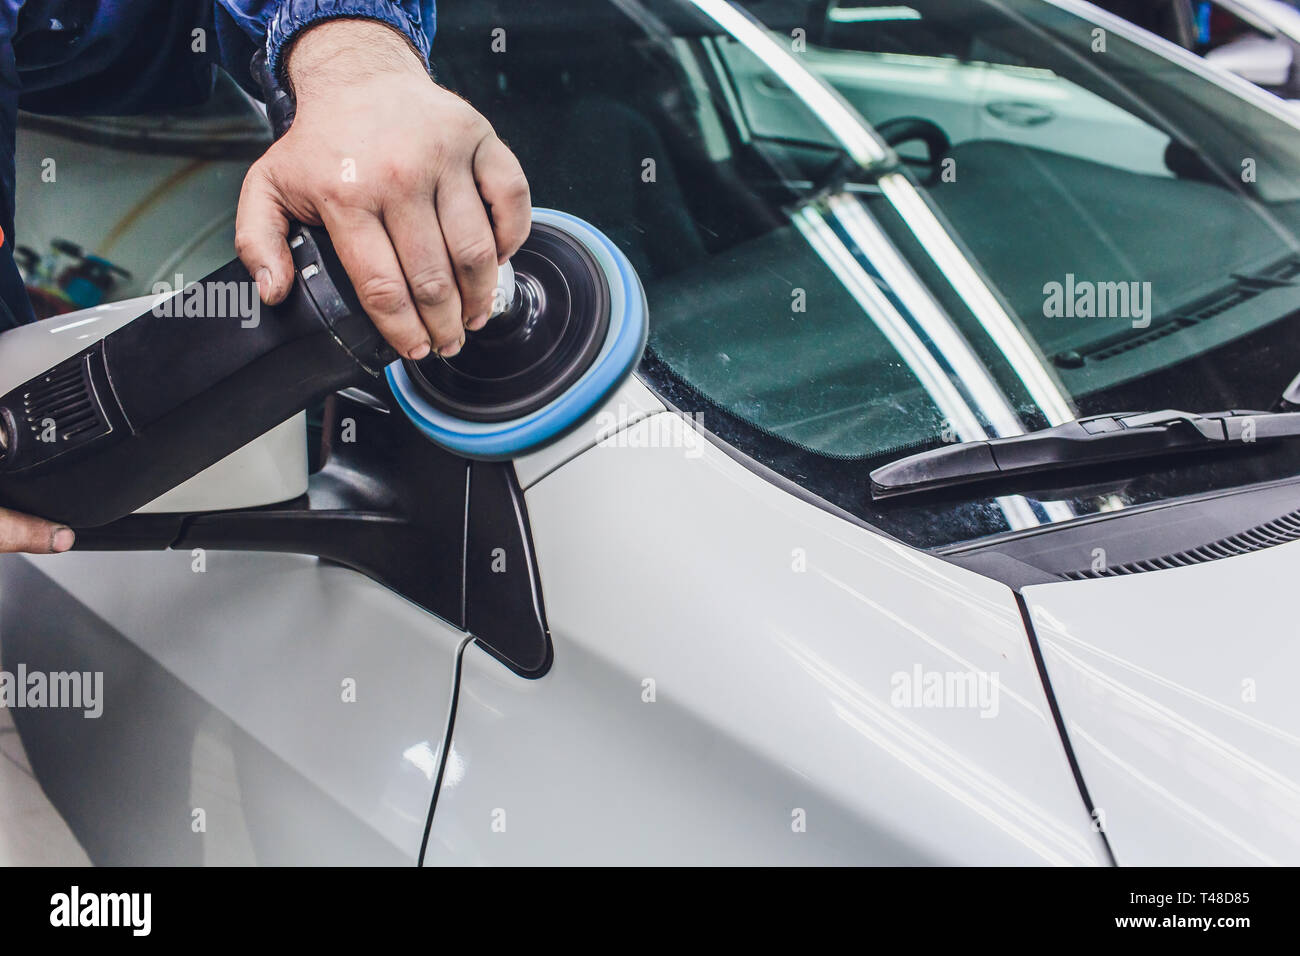 Car detailing - Hands with orbital polisher in auto repair shop. Selective focus. - Stock Image